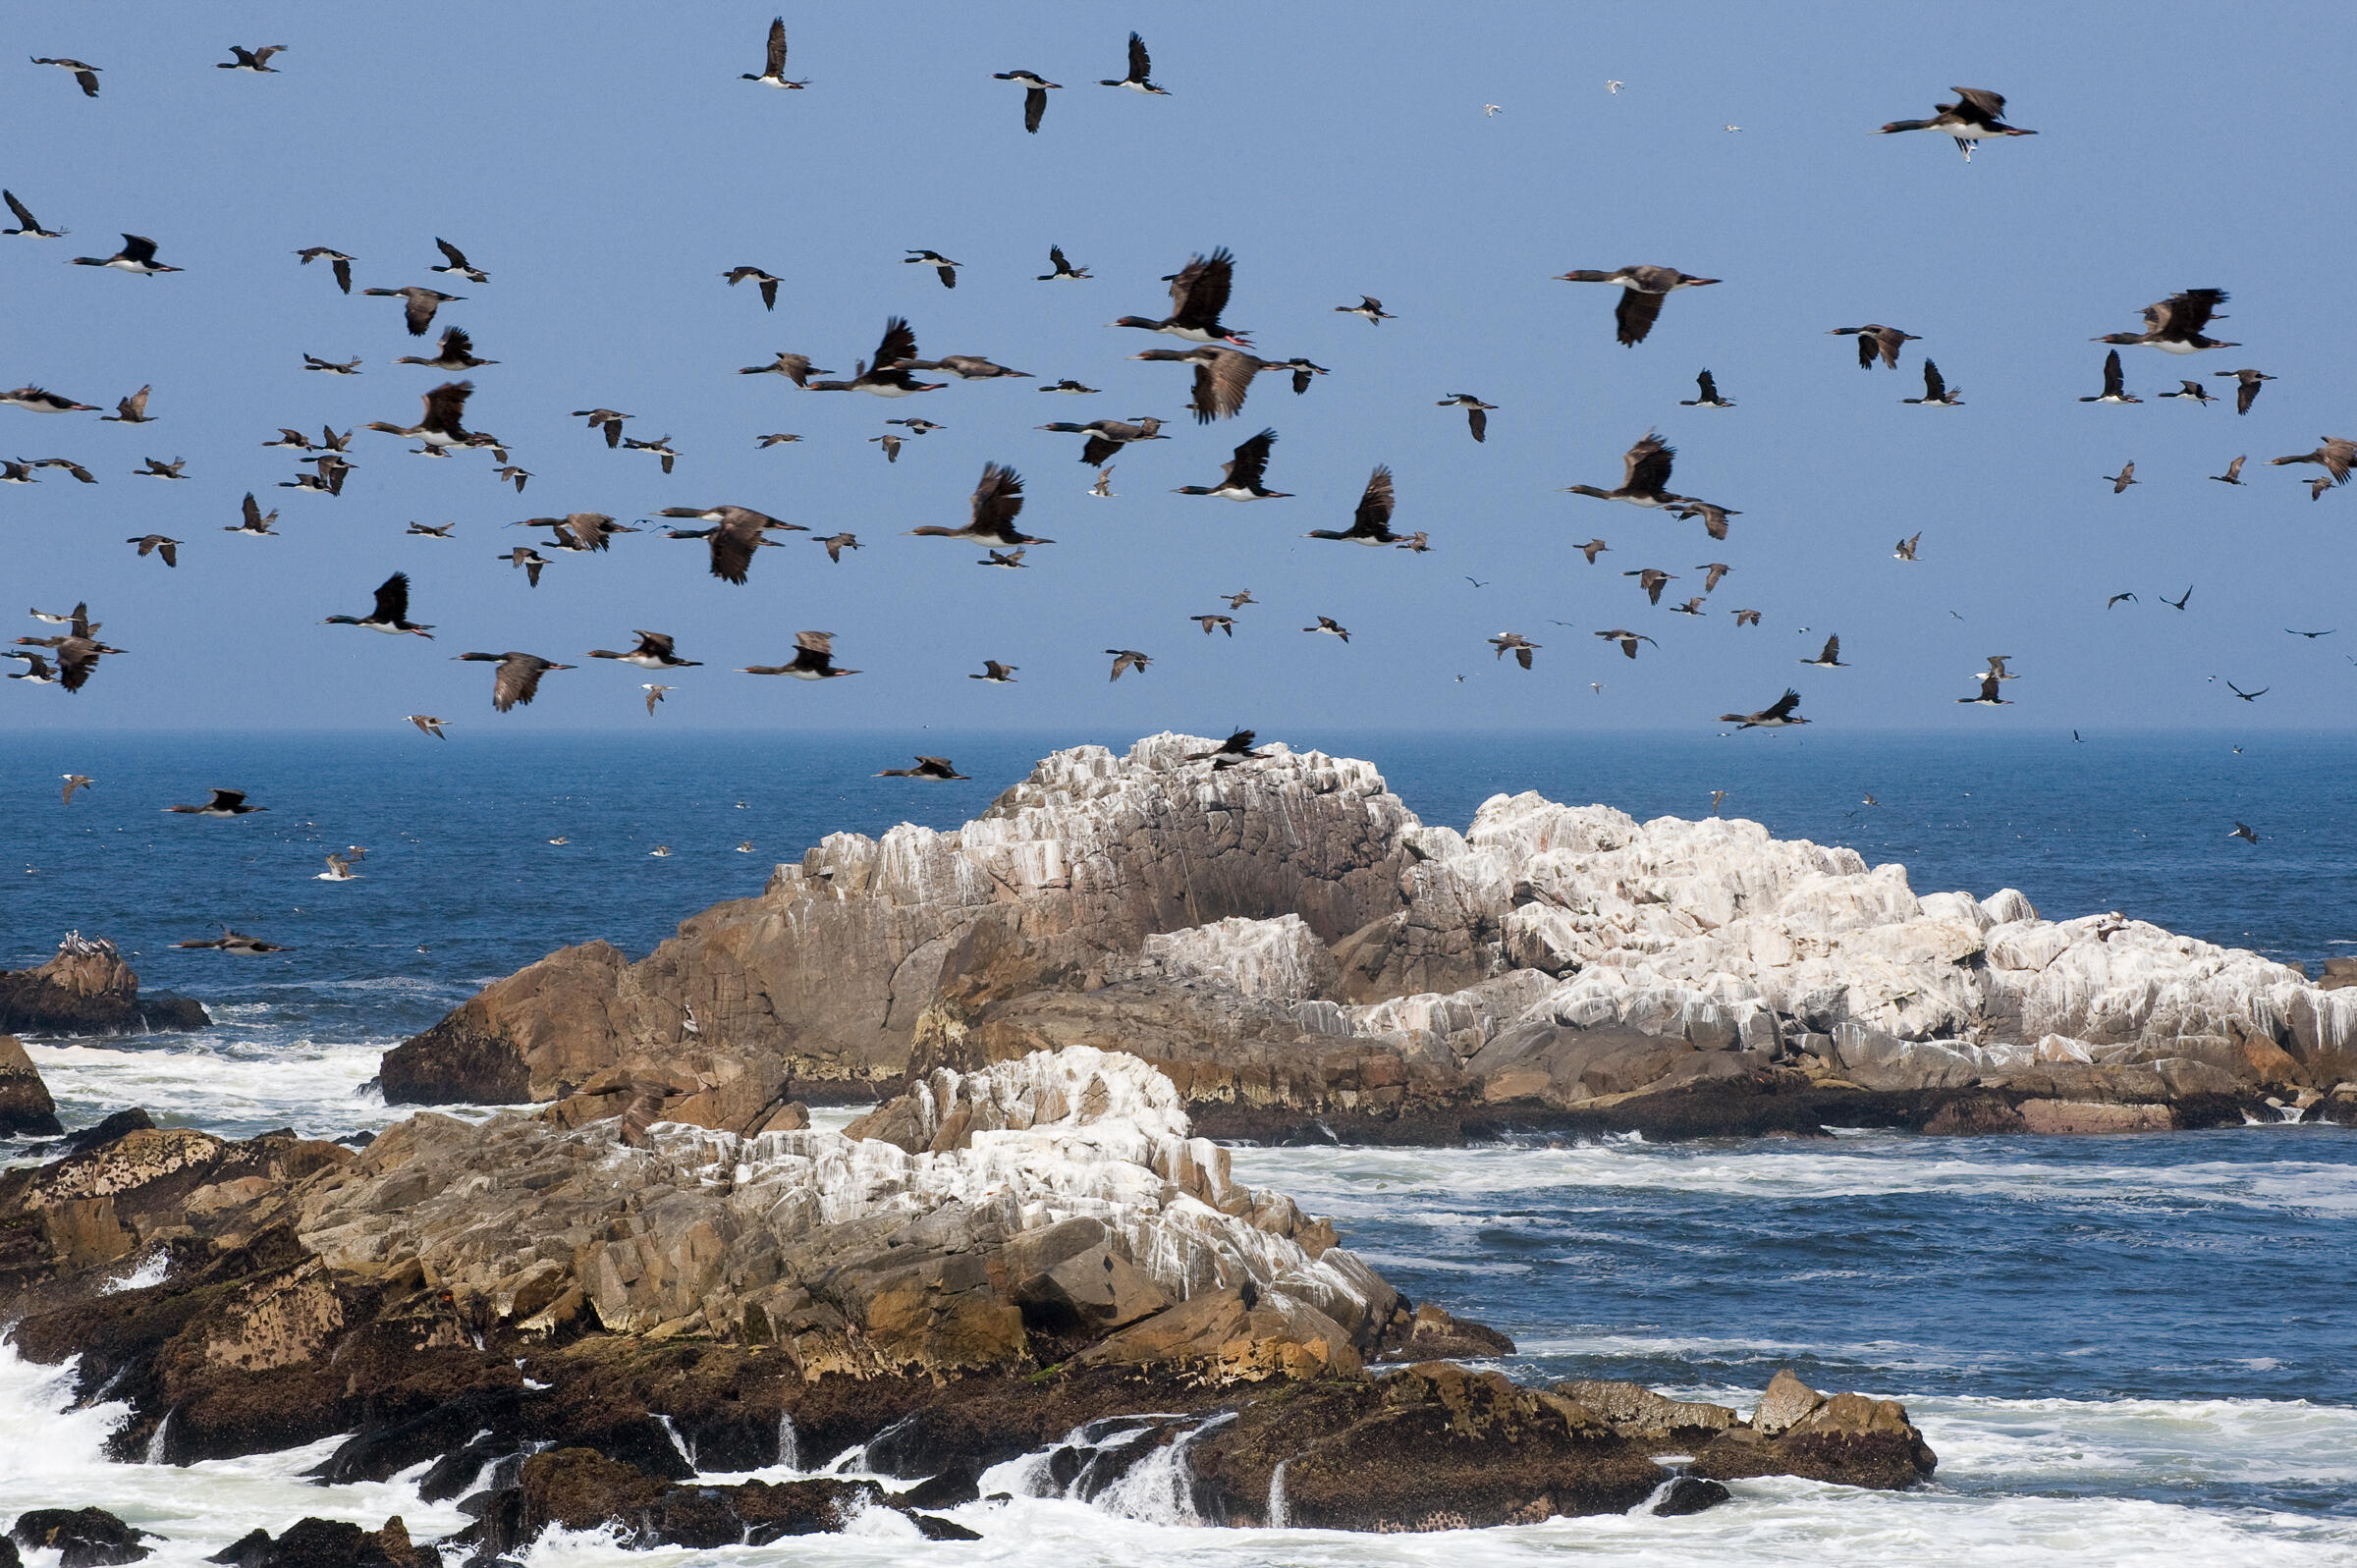 A flock of Guanay Cormorants seen off the coast of Peru. Kevin Schafer/Minden Pictures